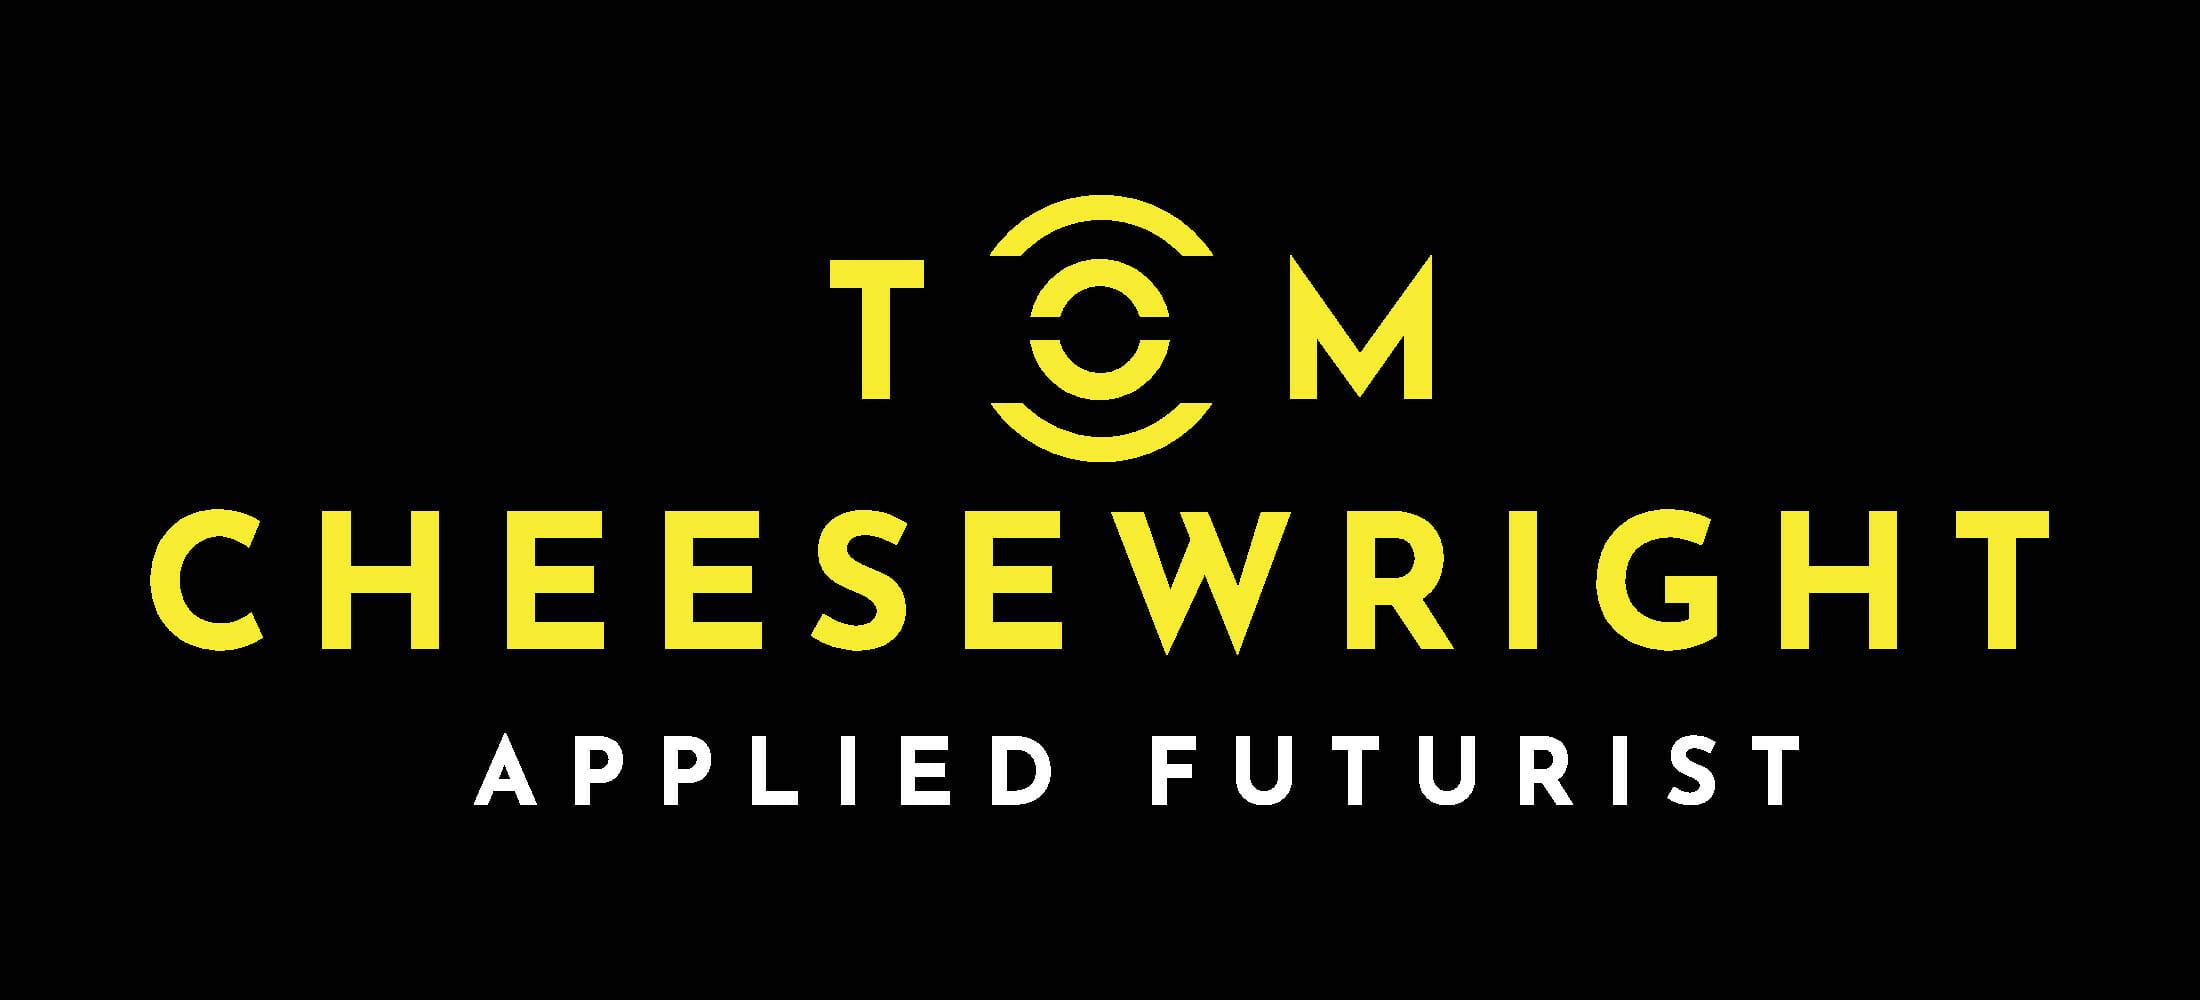 Tom Cheesewright